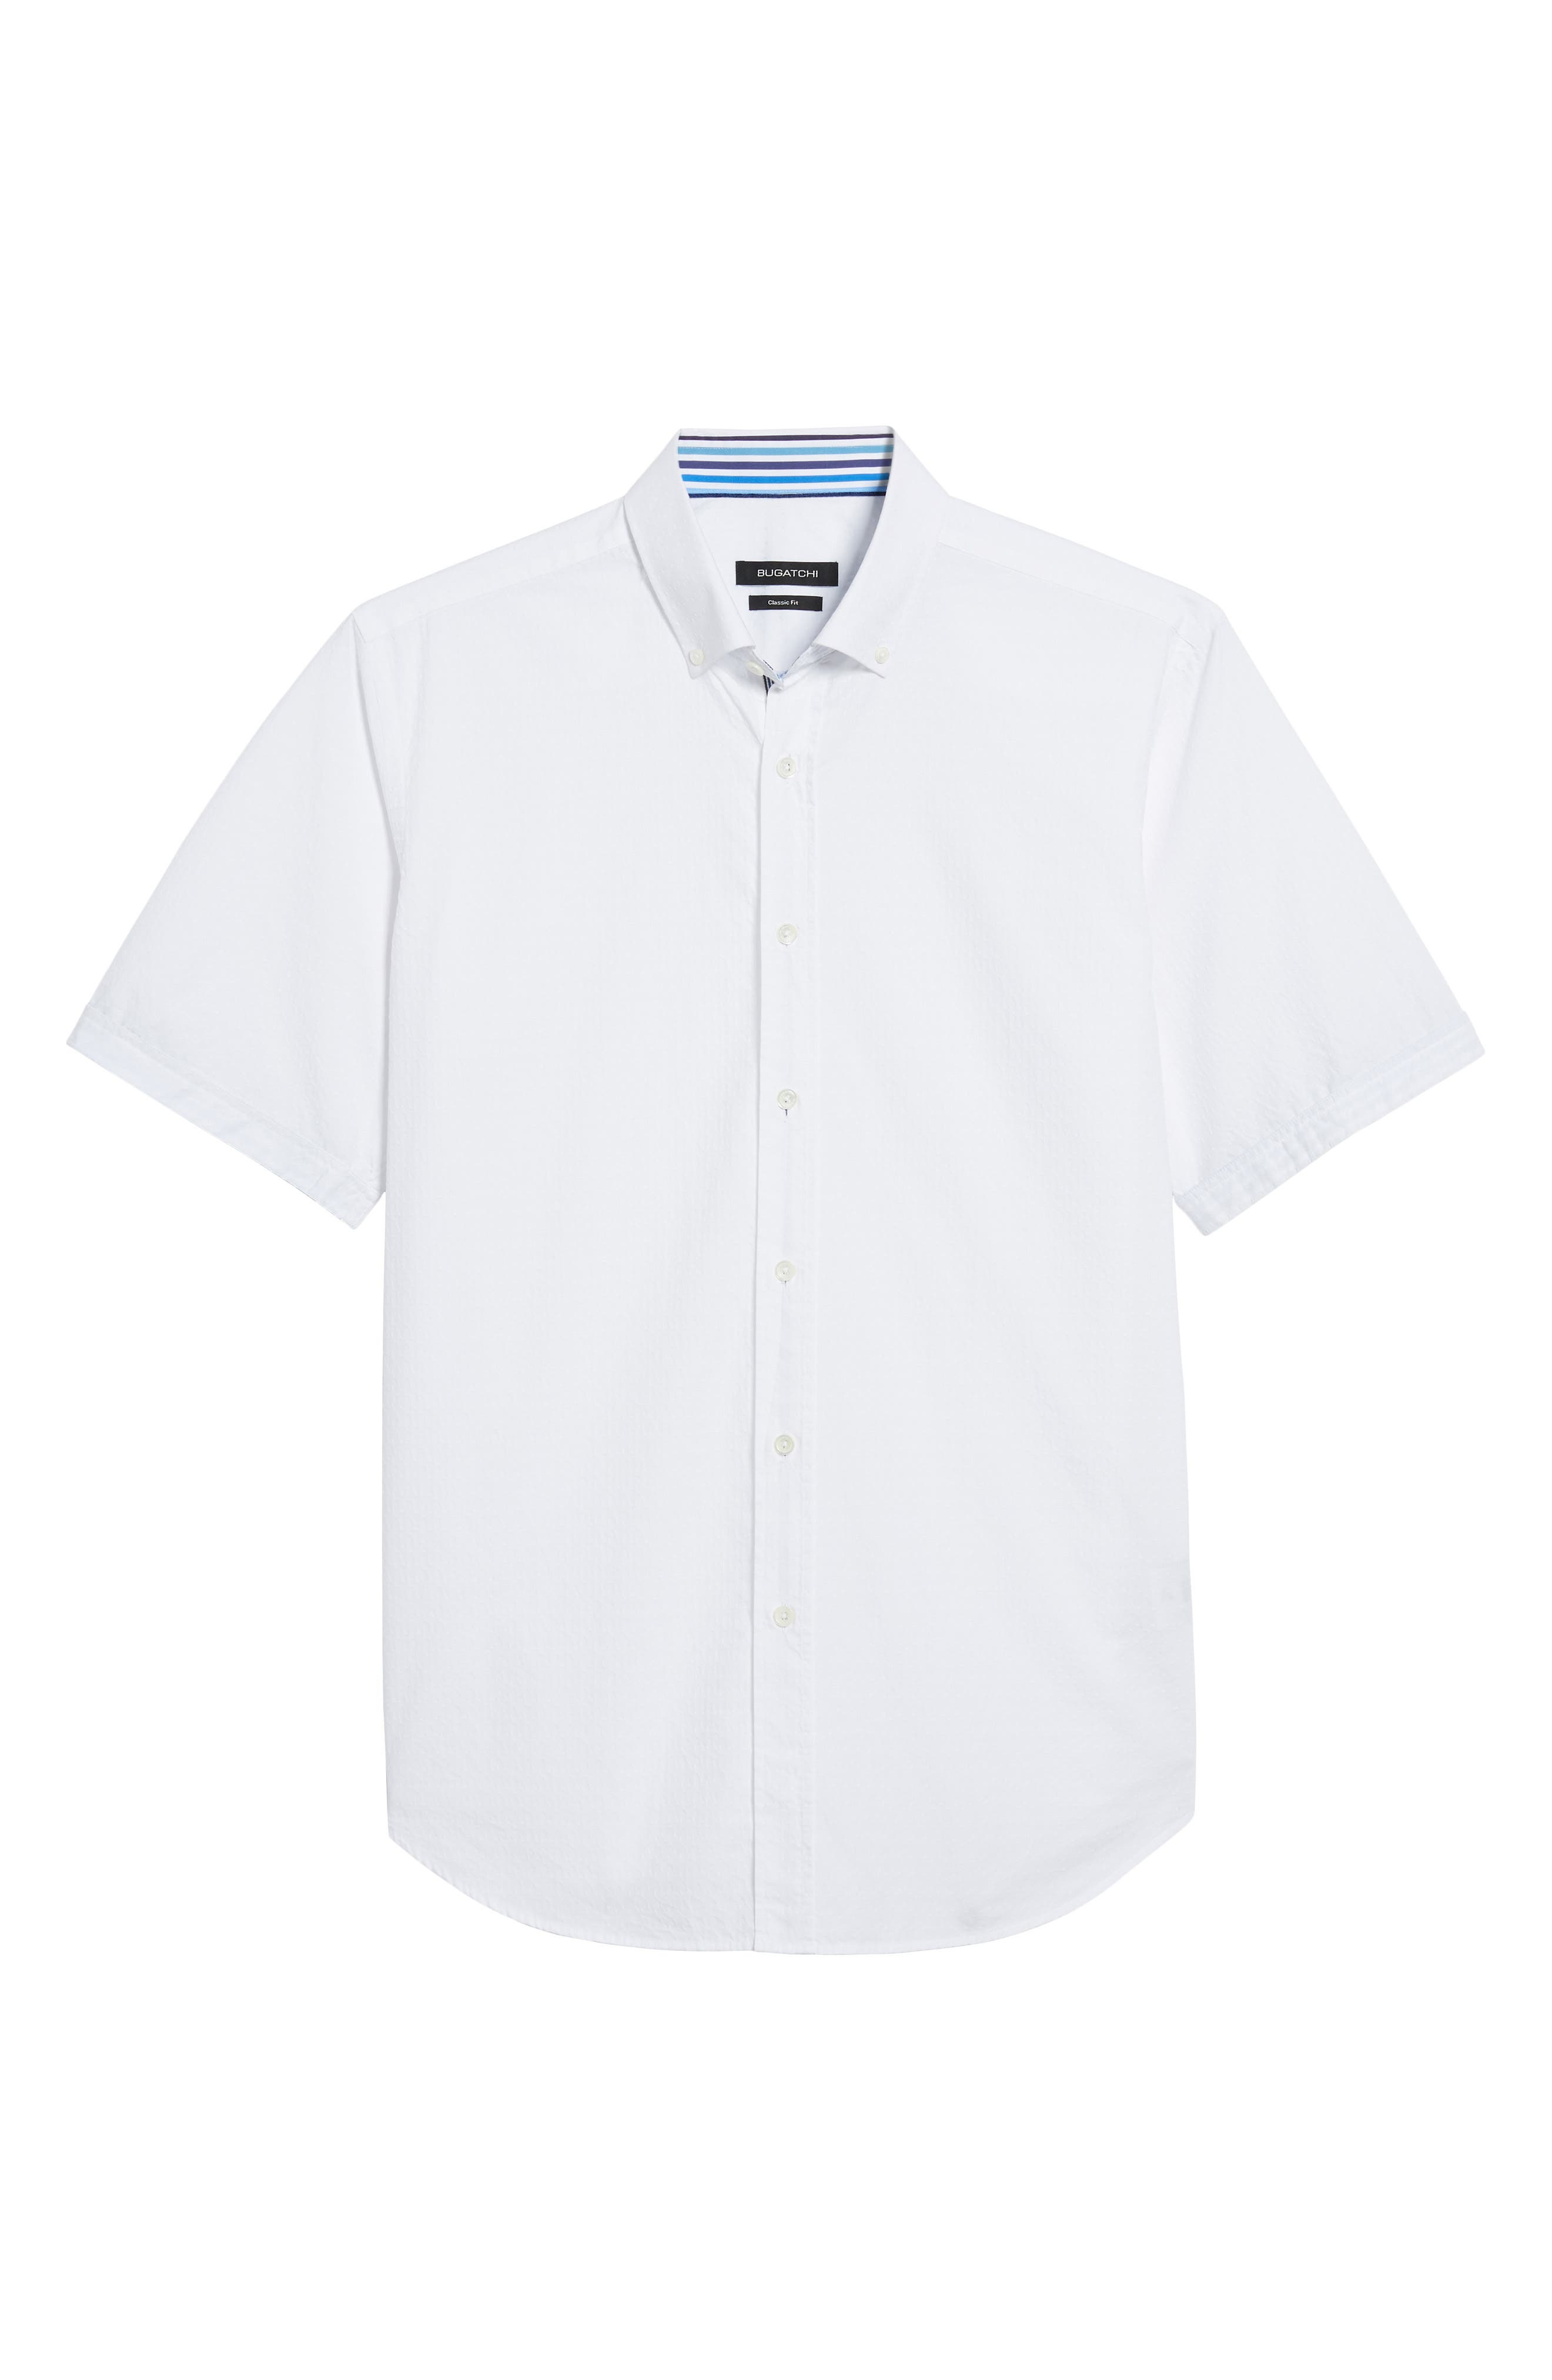 Classic Fit Textured Sport Shirt,                             Alternate thumbnail 6, color,                             White